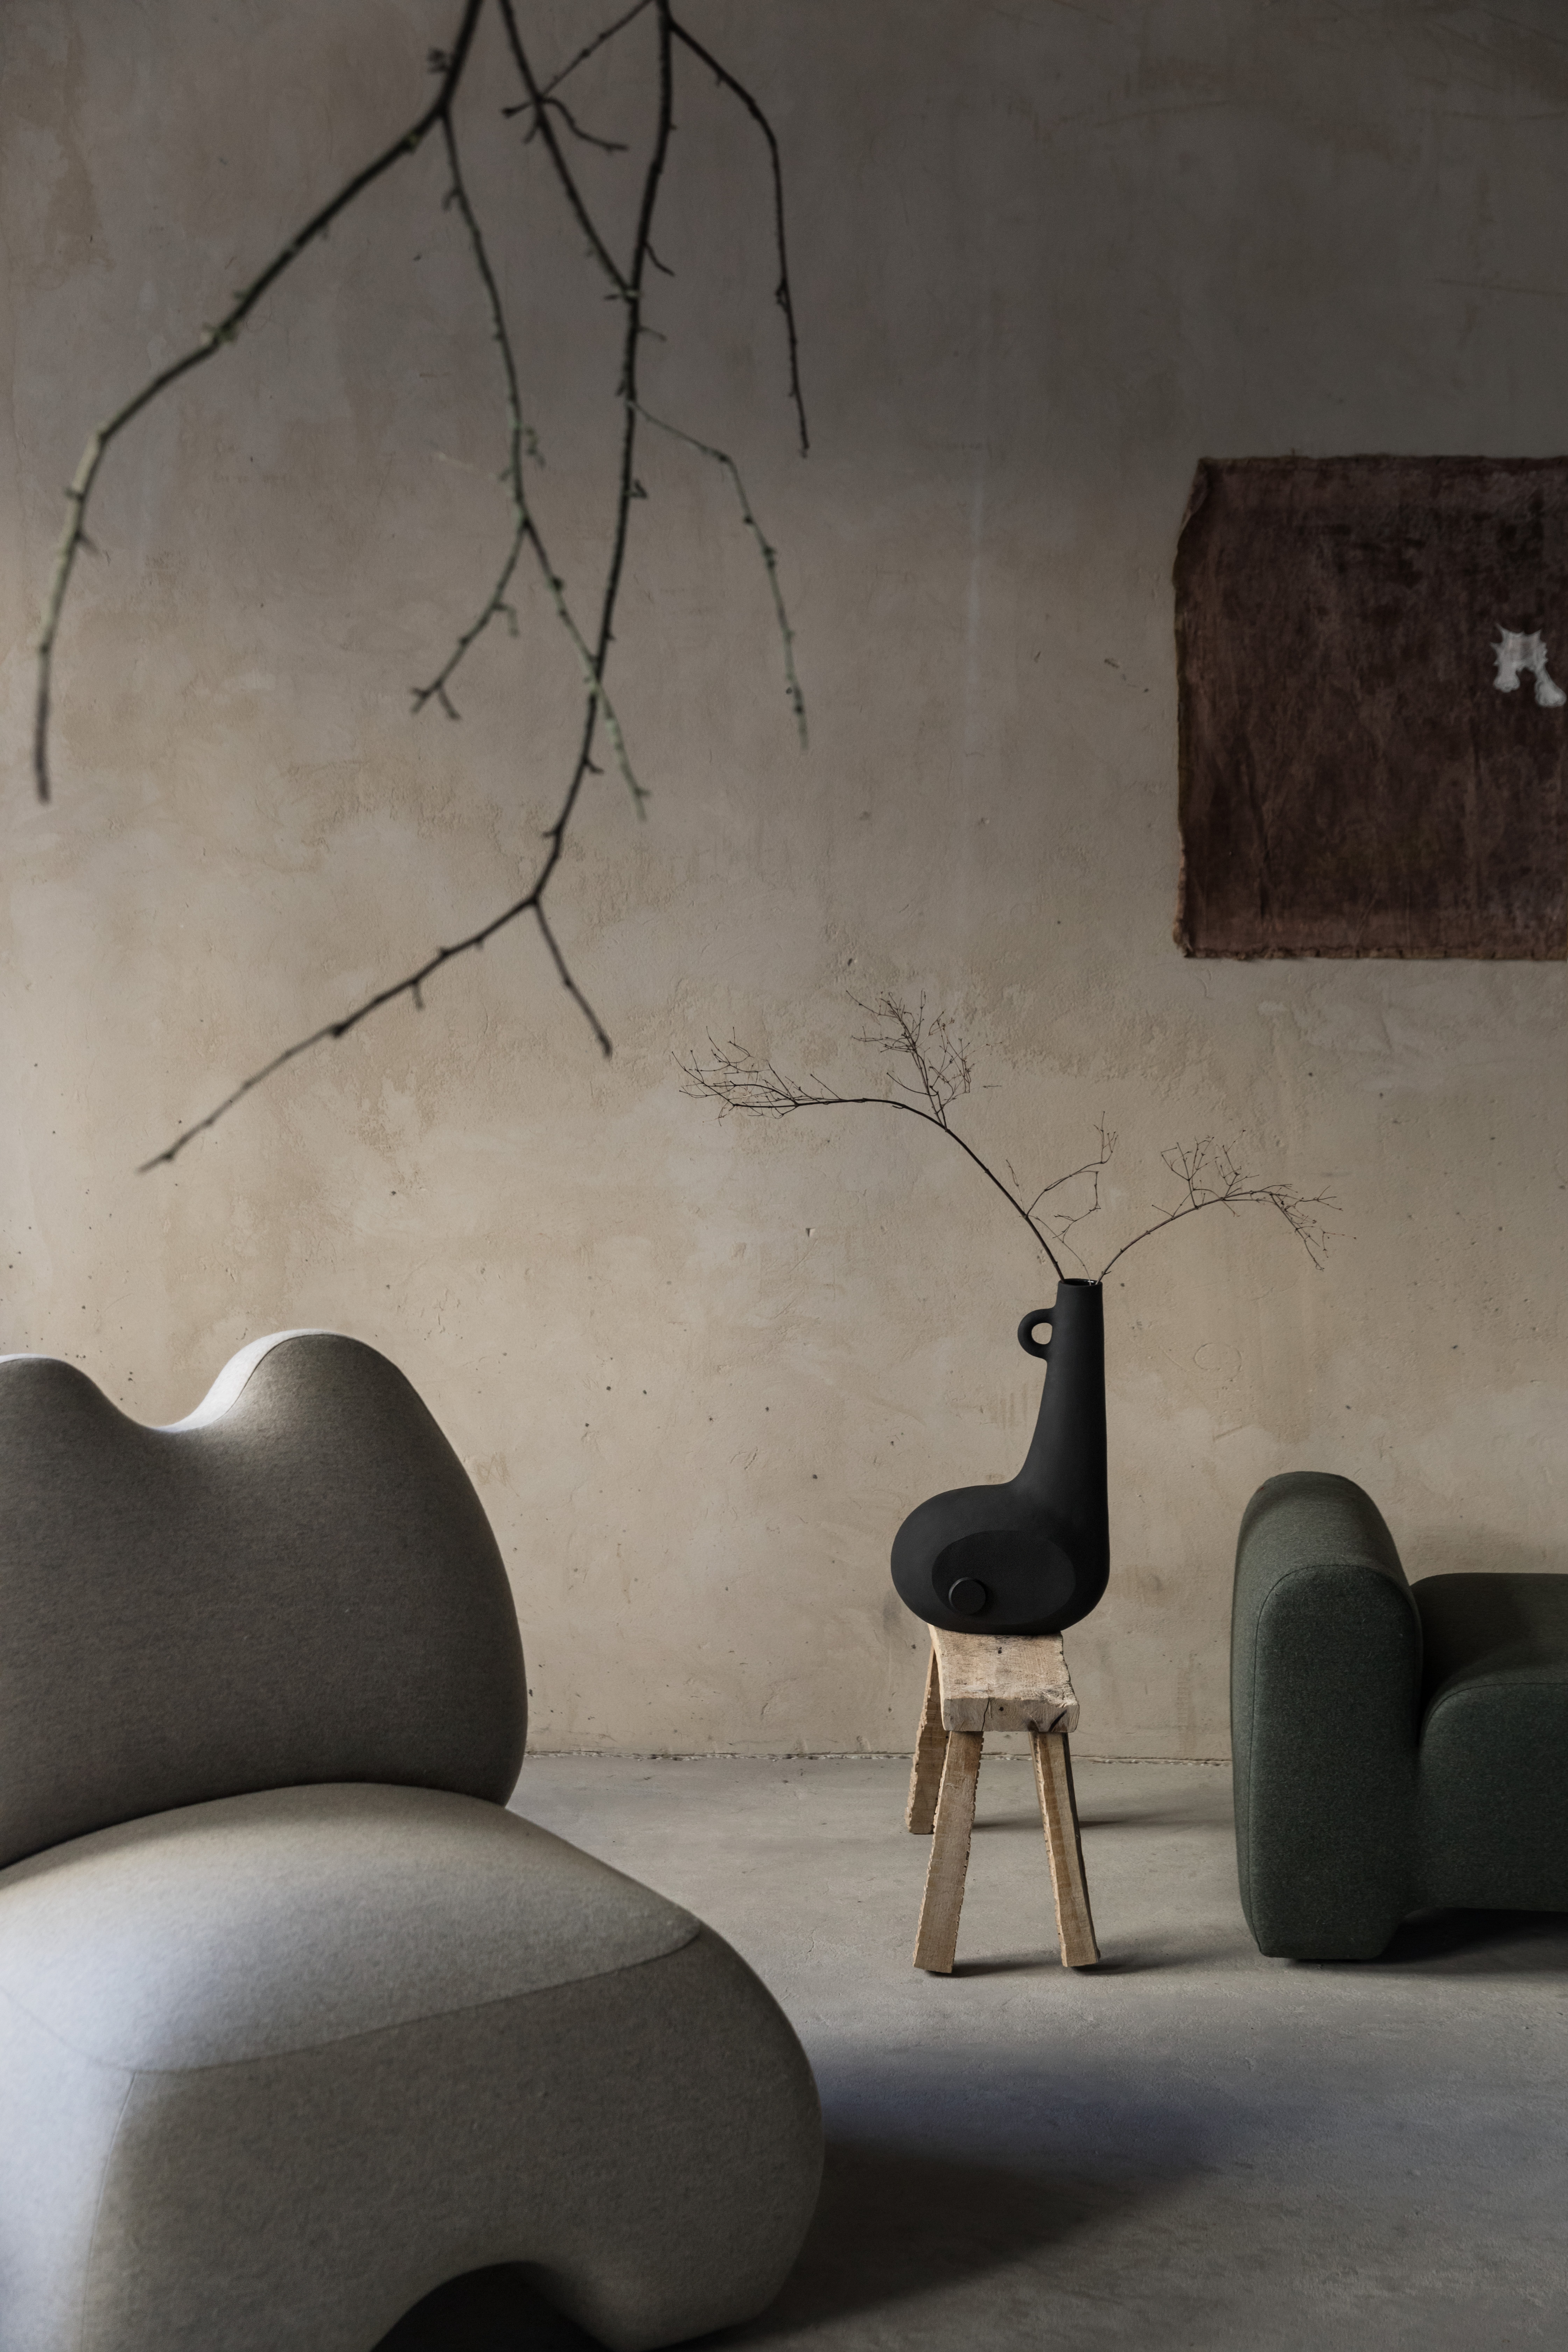 """Domna Armchair - """"Domna"""" in Ancient Ukrainian means home-maker, goddess of welfare. The armchair Domna is a new design piece with a soft exterior and at the same time hawkish temper that tends to be the mistress of any space. 